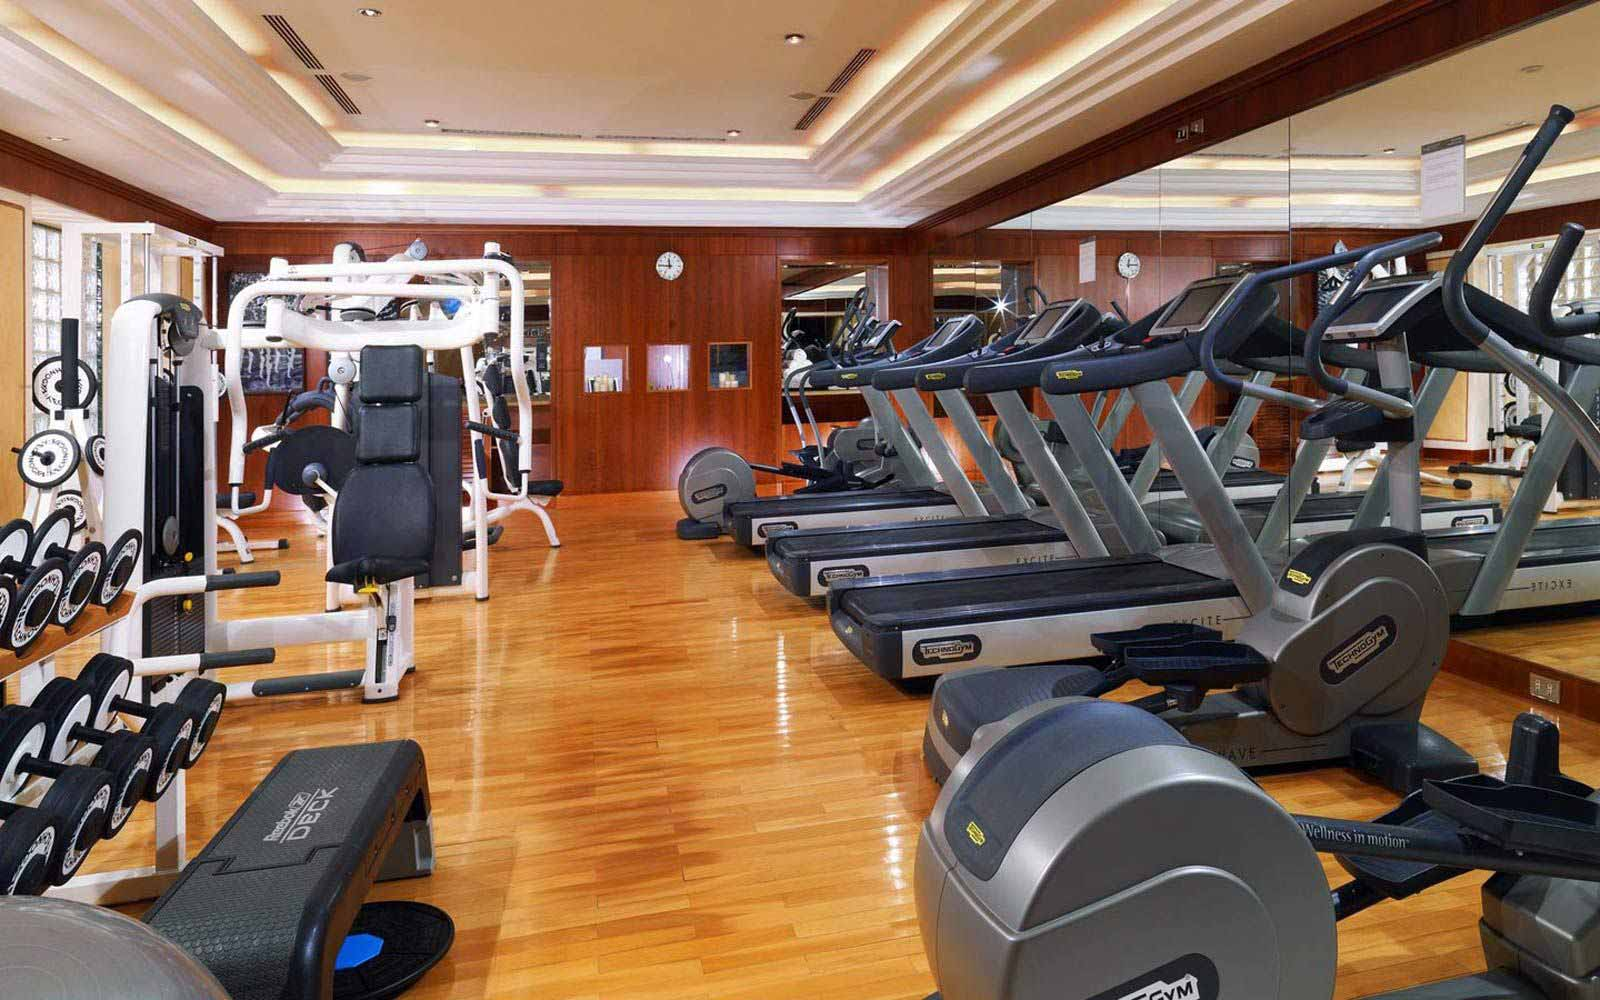 Fitness room at The Westin Excelsior